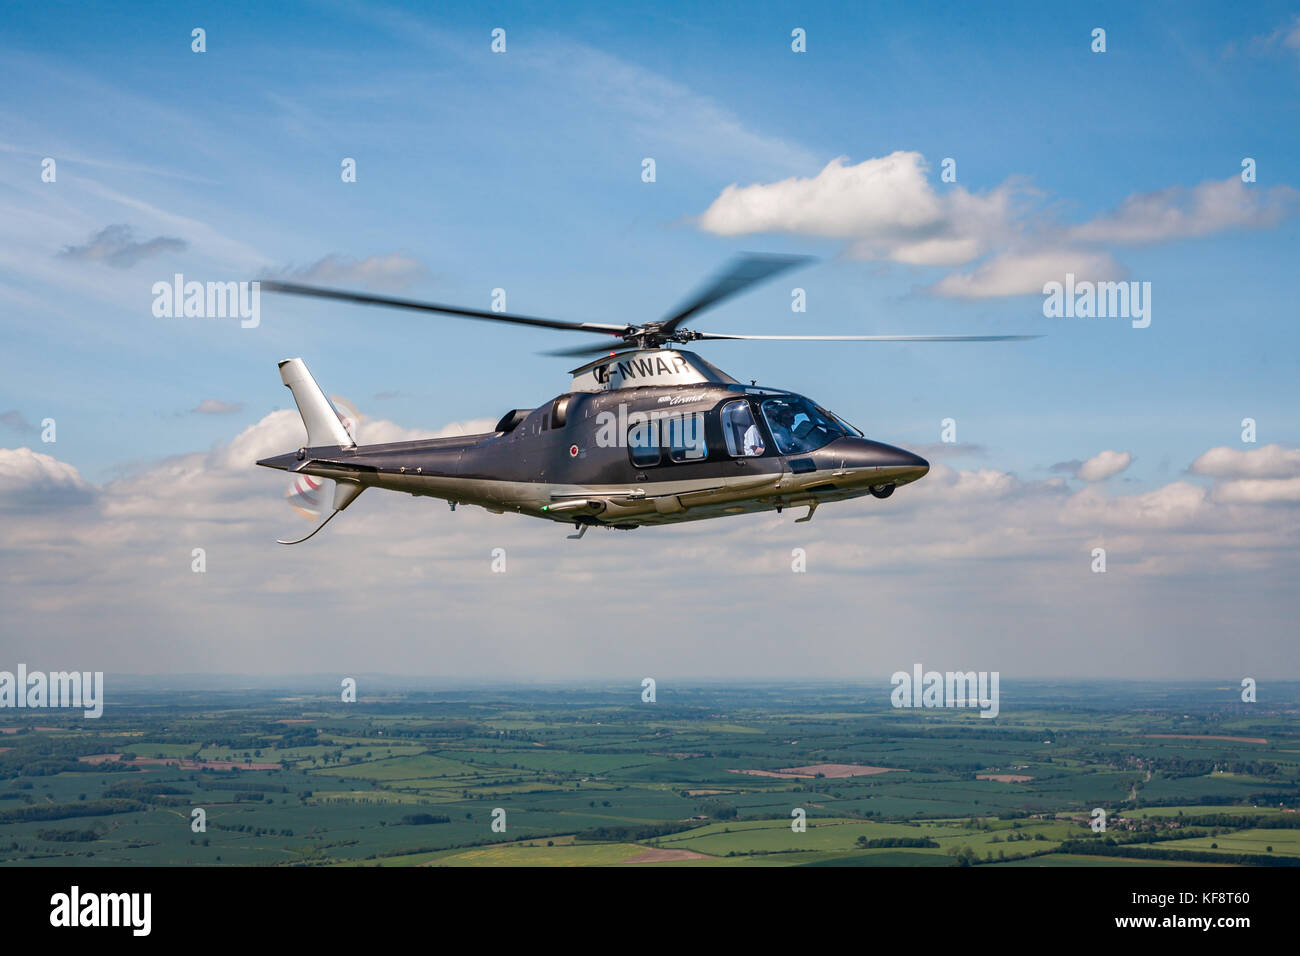 fwc helicopter with Bell 206 Helicopter on Metal Building Construction Jobs additionally 11306425 likewise Six Car Garage In The River Club 1263236 further Thousands turn out f furthermore Huntingleashes.